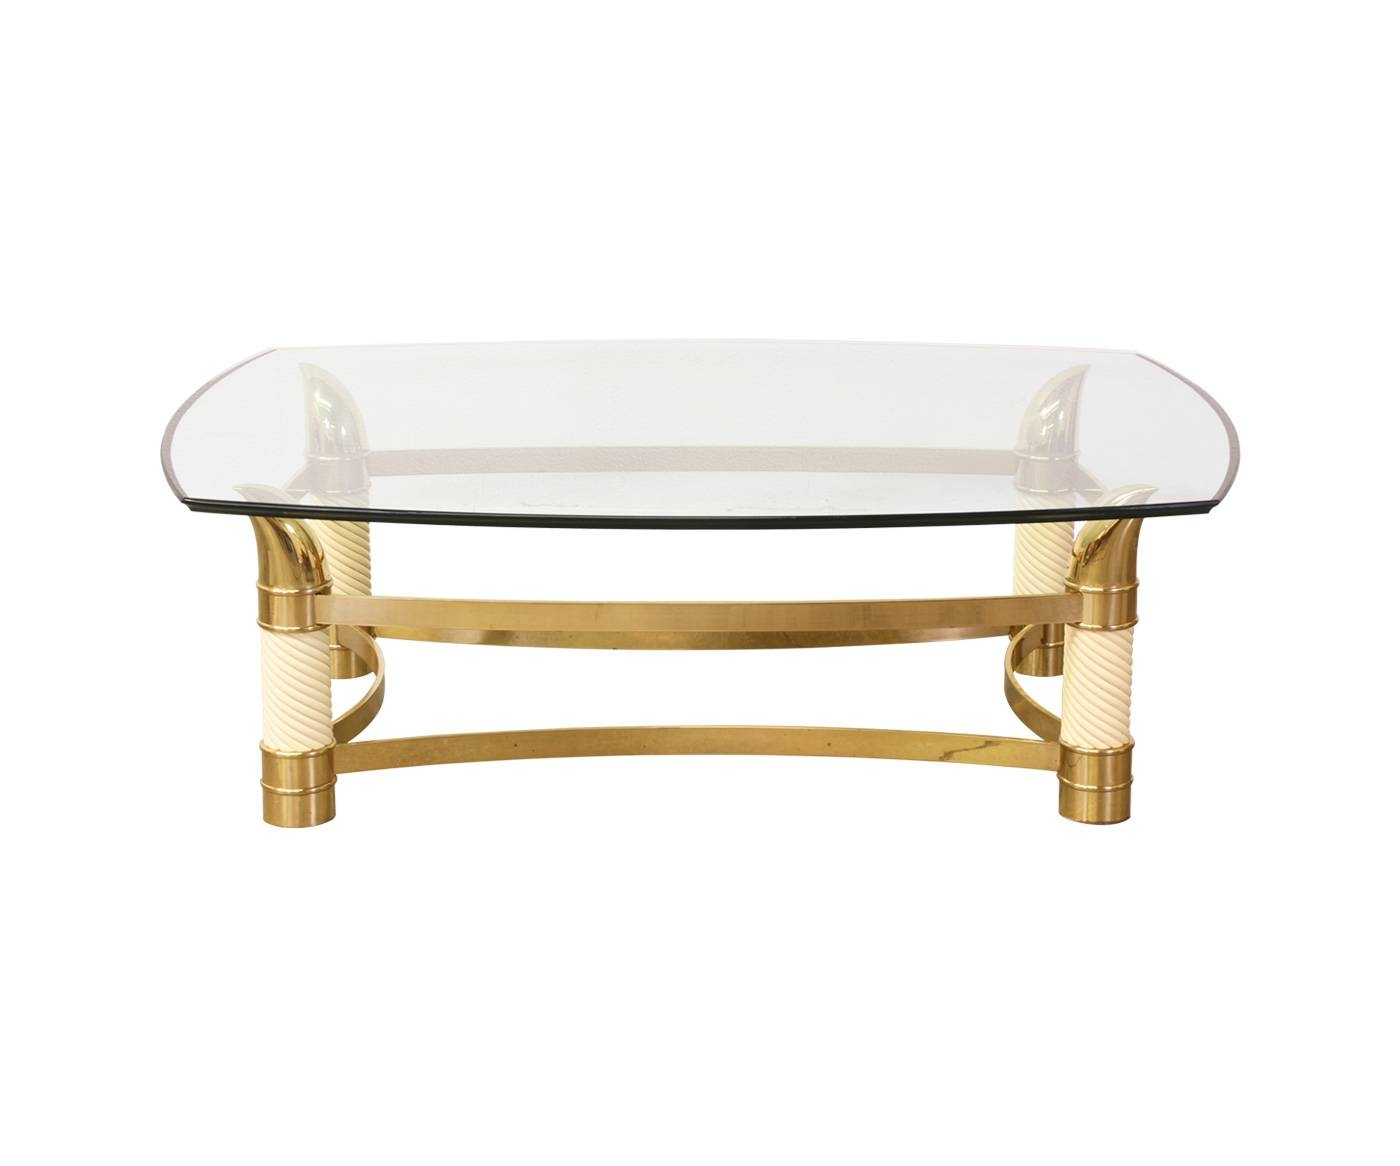 Vintage Italian Brass Horn Coffee Table W/ Glass Top | Danish throughout Vintage Glass Top Coffee Tables (Image 28 of 30)